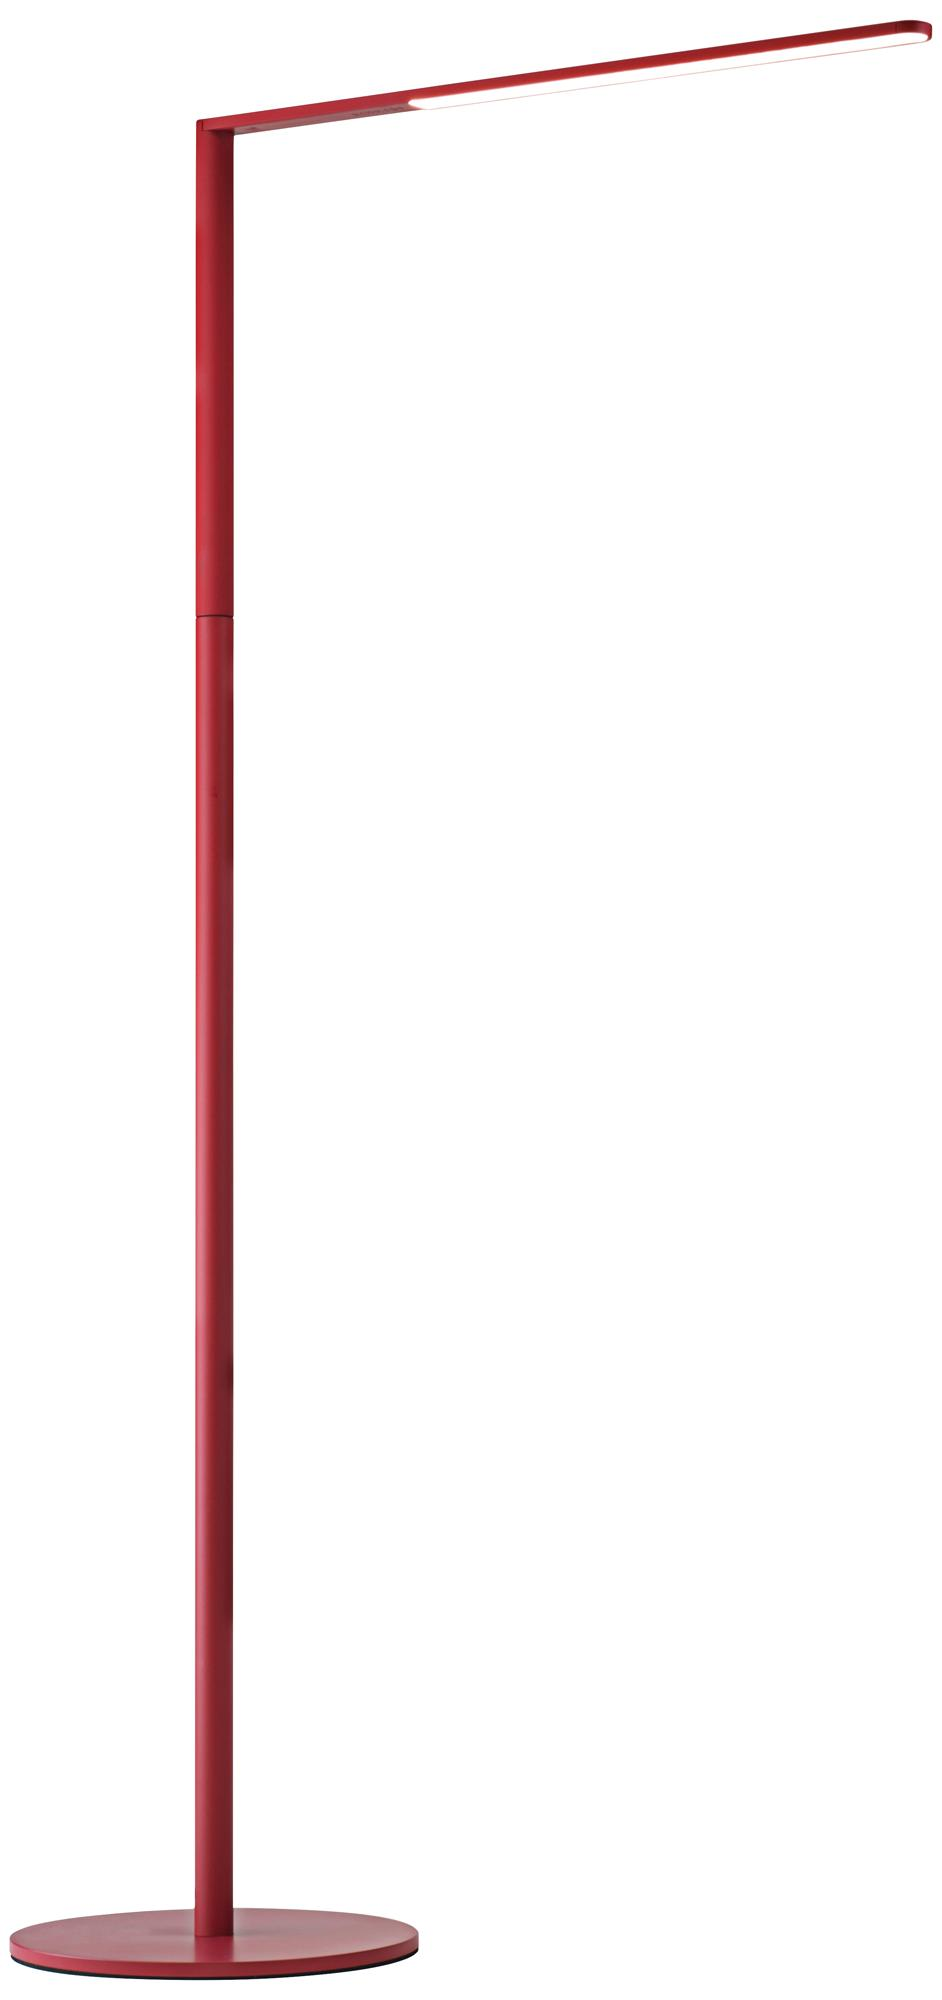 Koncept Lady-7 Matte Red LED Floor Lamp (9C383)